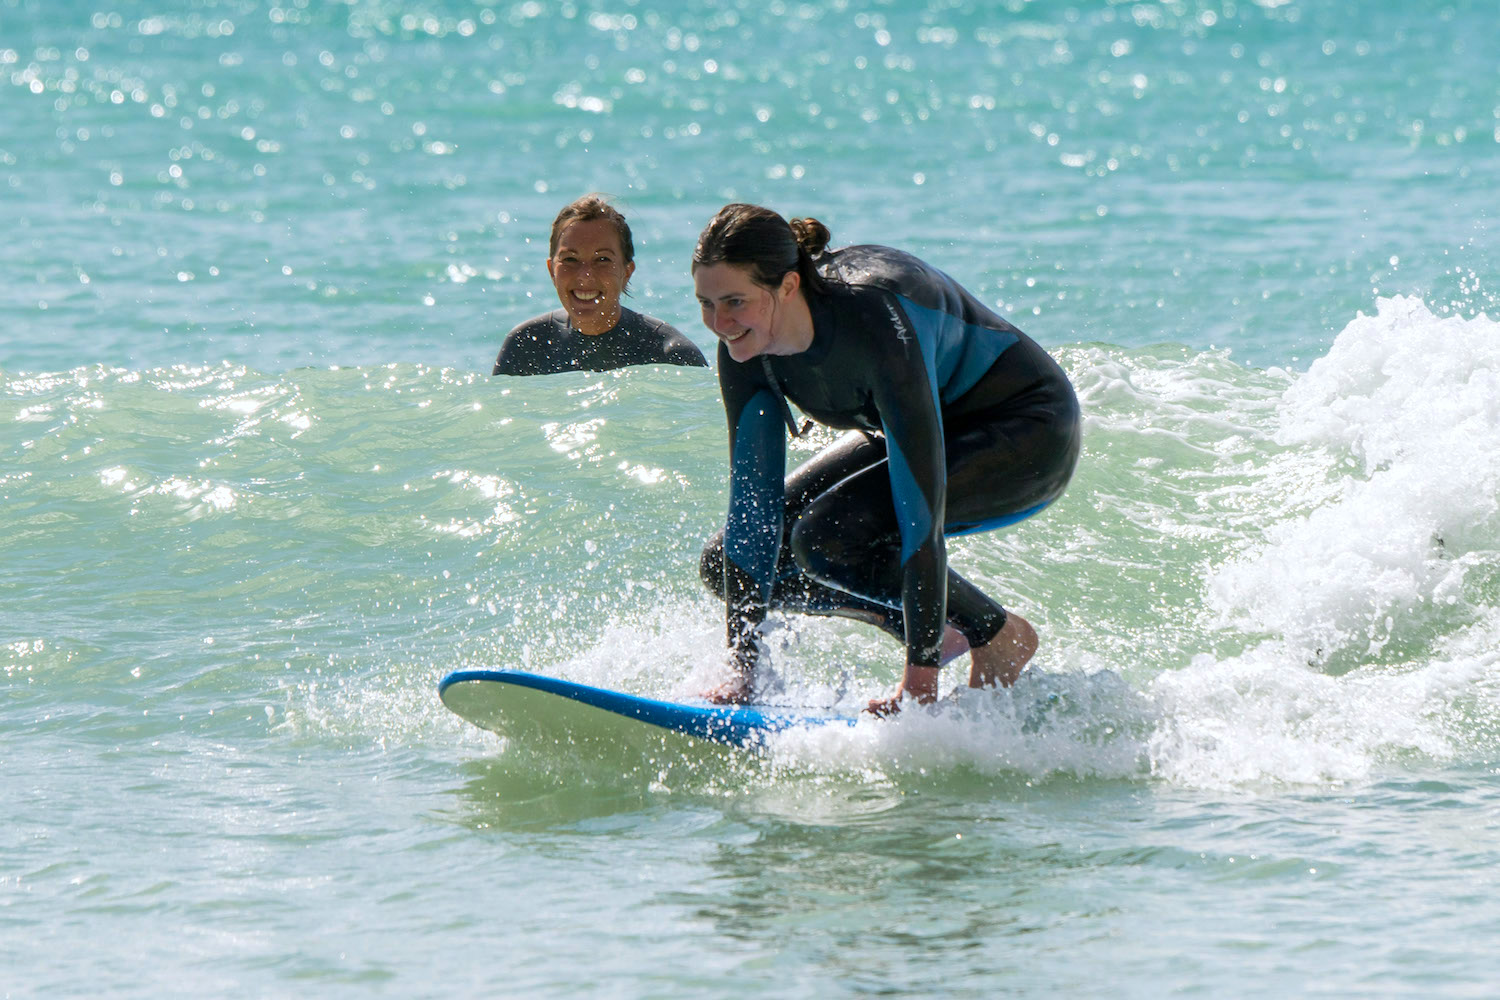 ride-on-retreats-girl-on-a-surf-board.jpg